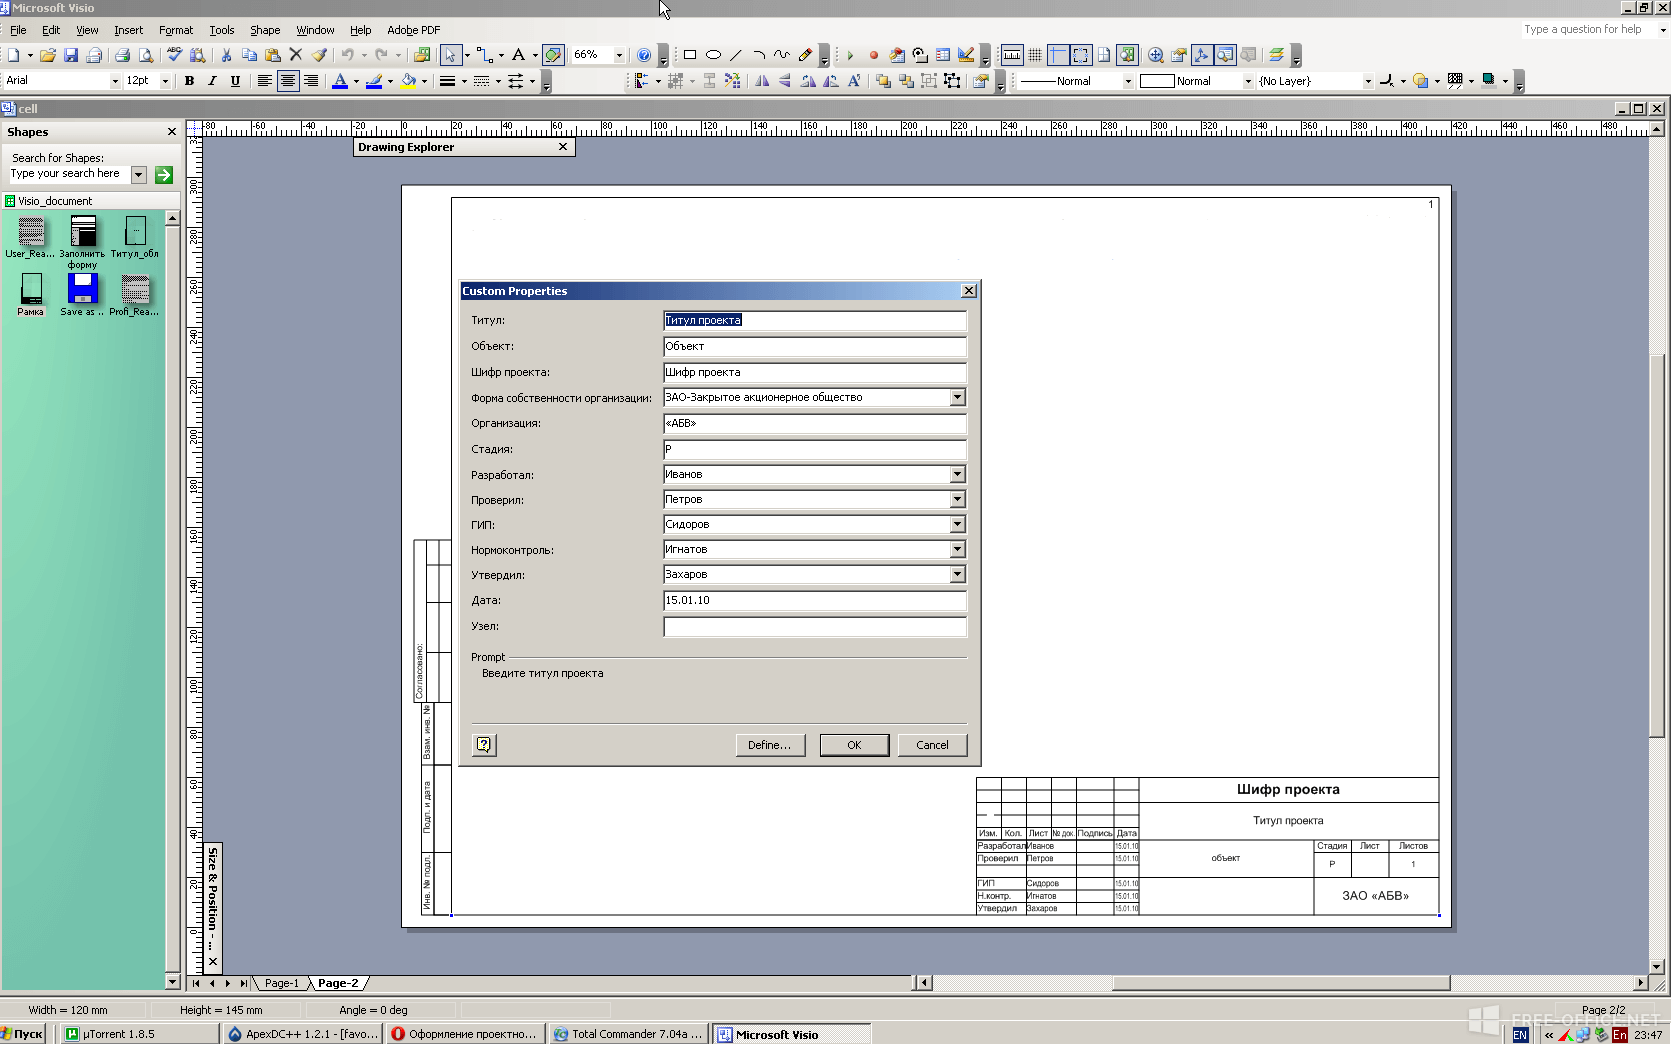 microsoft office visio 2007 free download for windows 7 64 bit